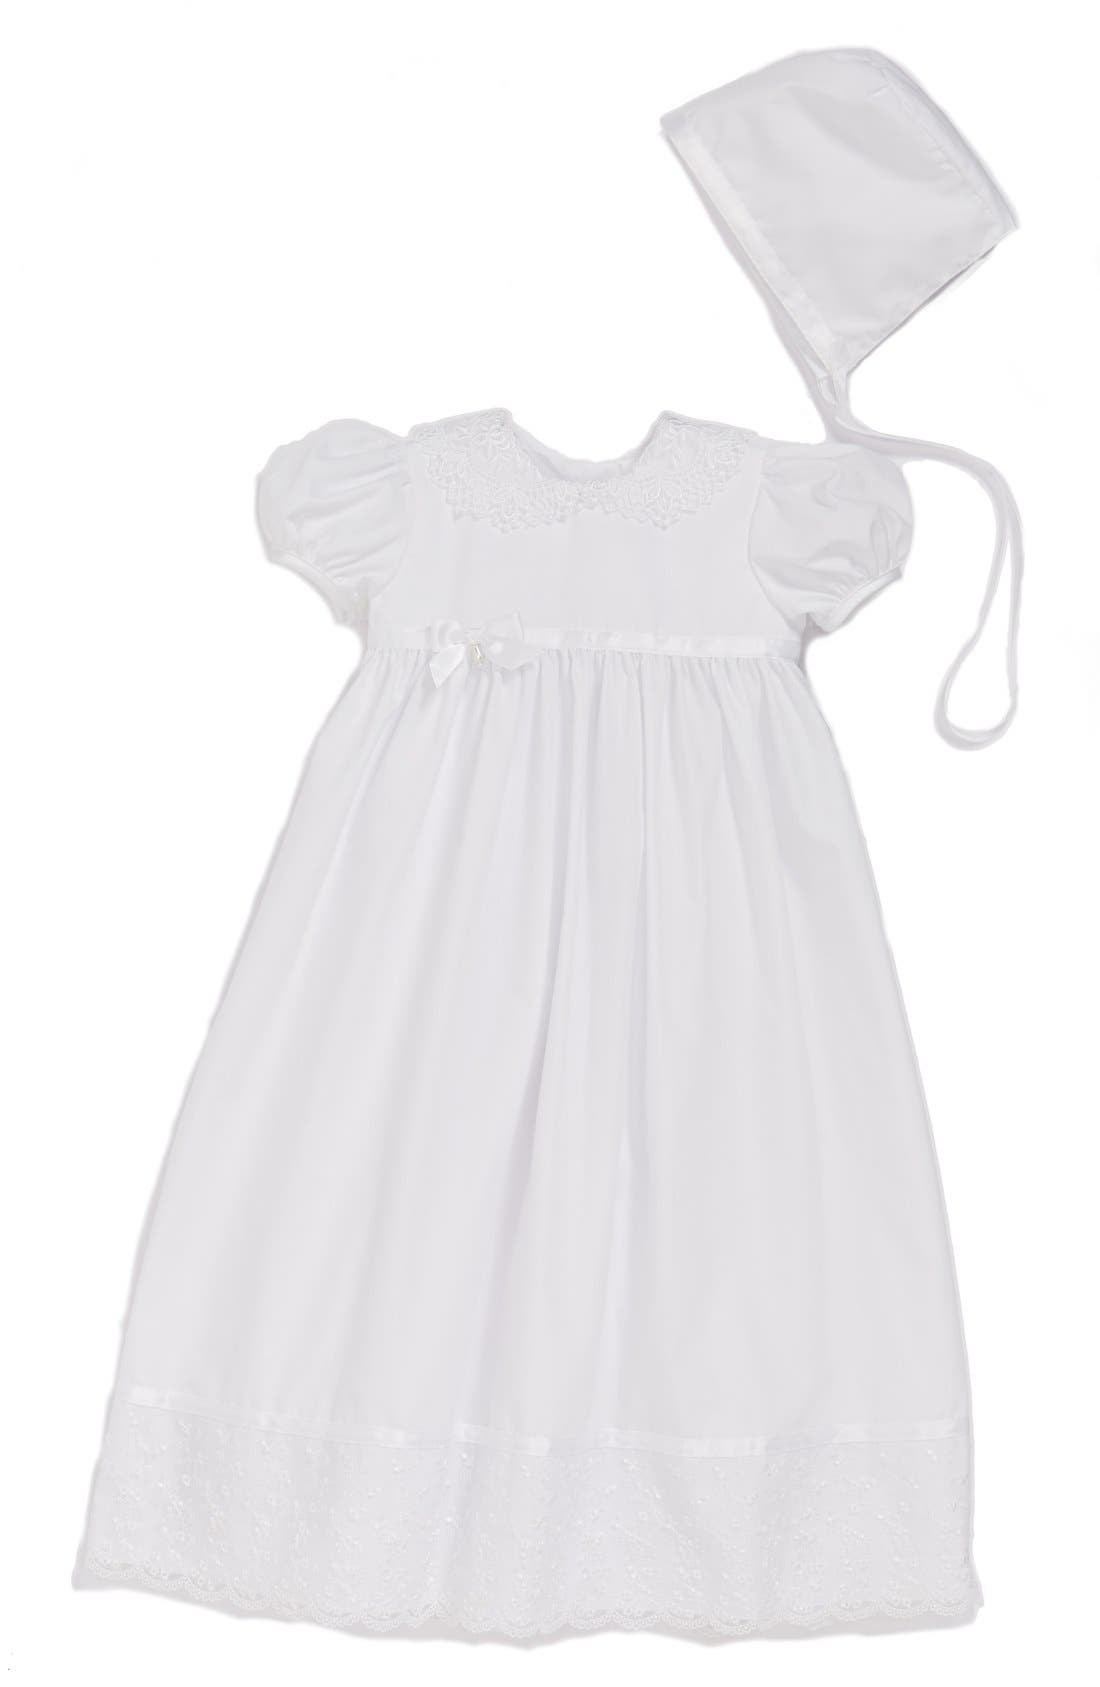 Lace Collar Christening Gown and Bonnet Set,                         Main,                         color, WHITE